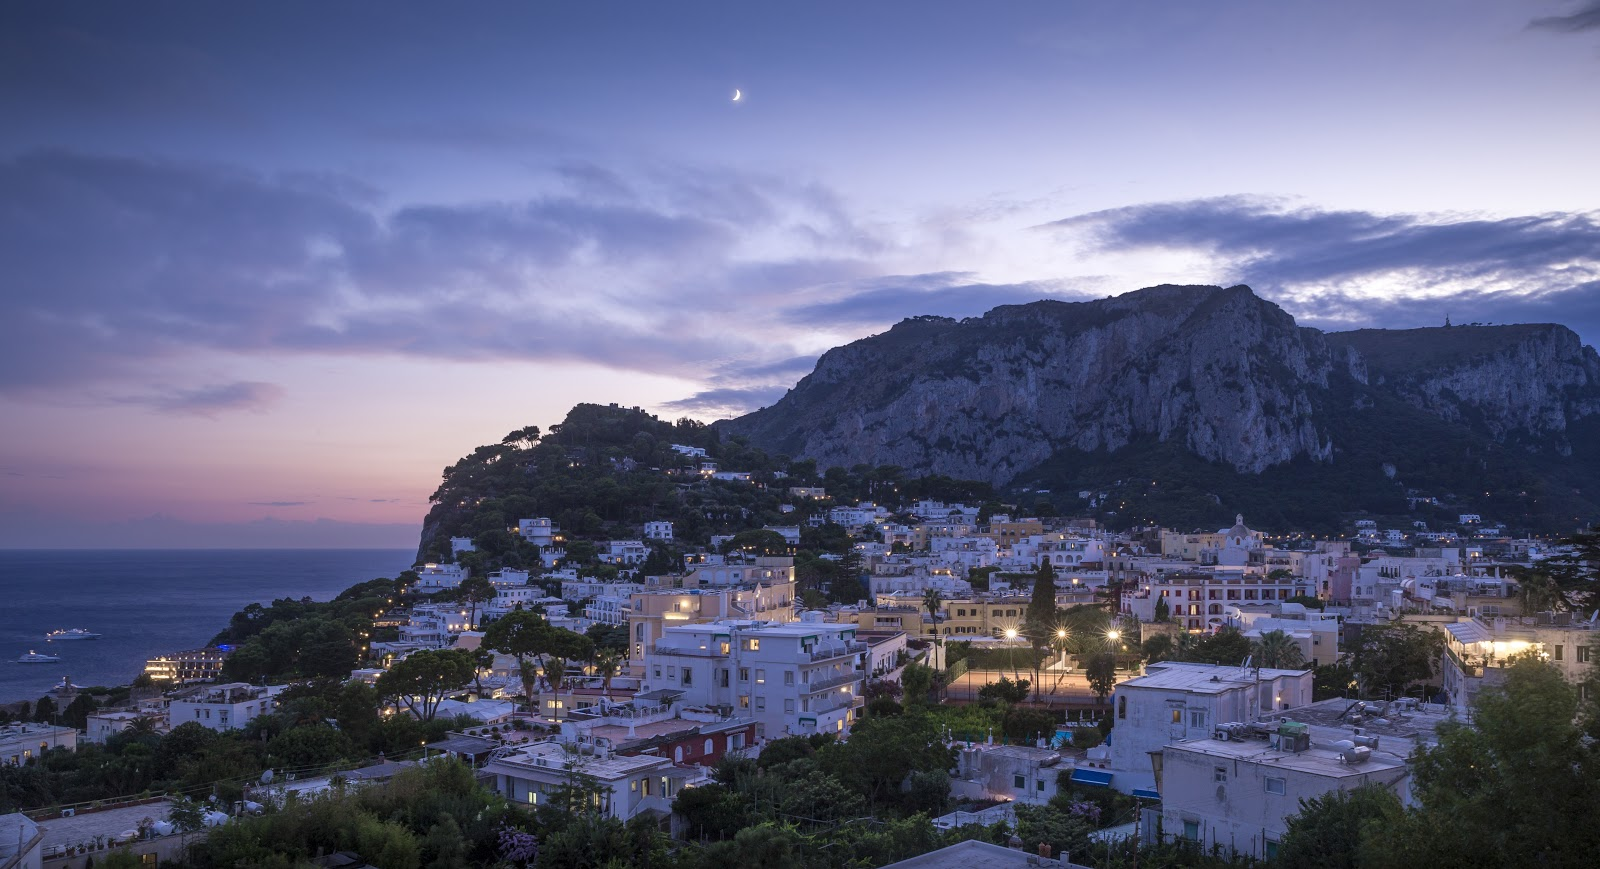 Capri-at-Night.jpg